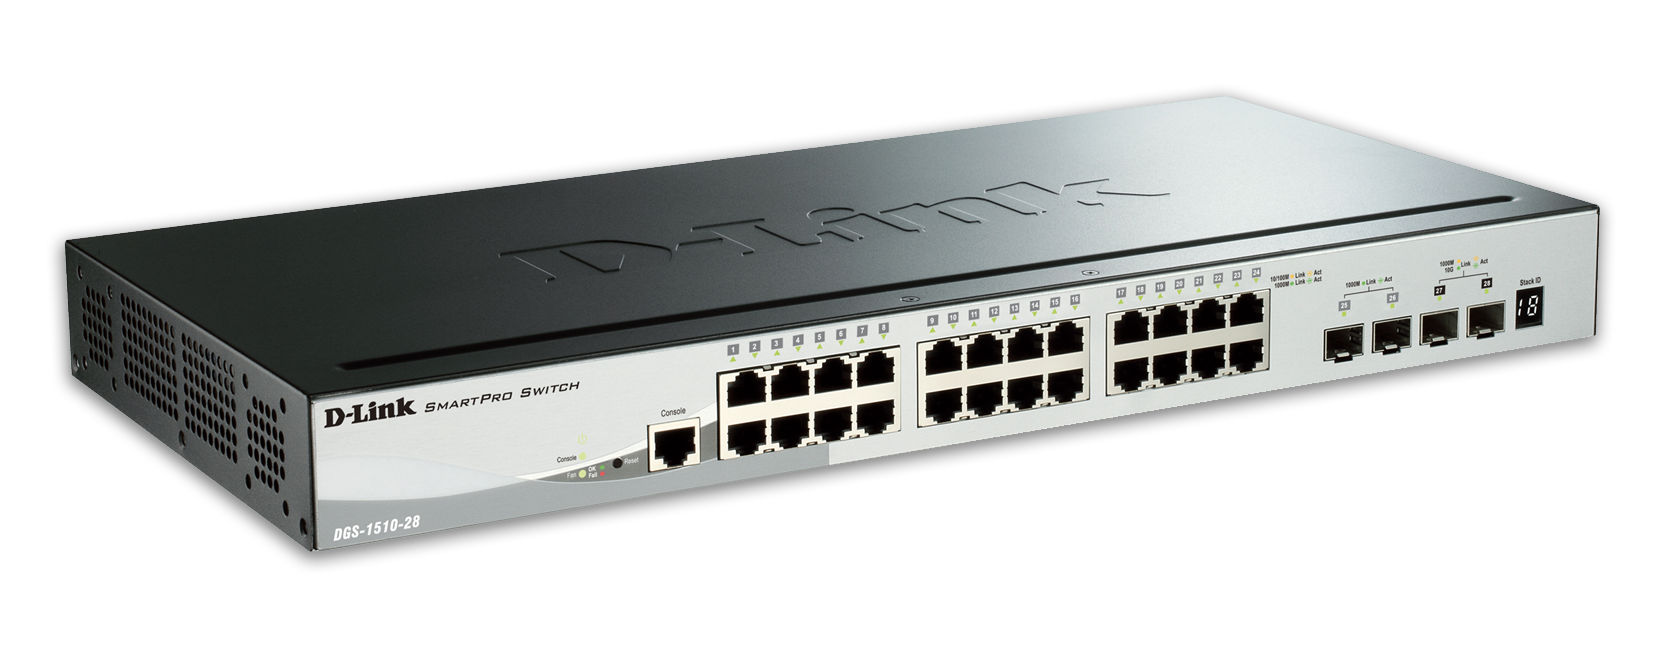 D-Link DGS-1510-28 28-Port Gigabit Stackable Smart Managed Switch including 2 10G SFP+ and 2 SFP ports (smart fans)